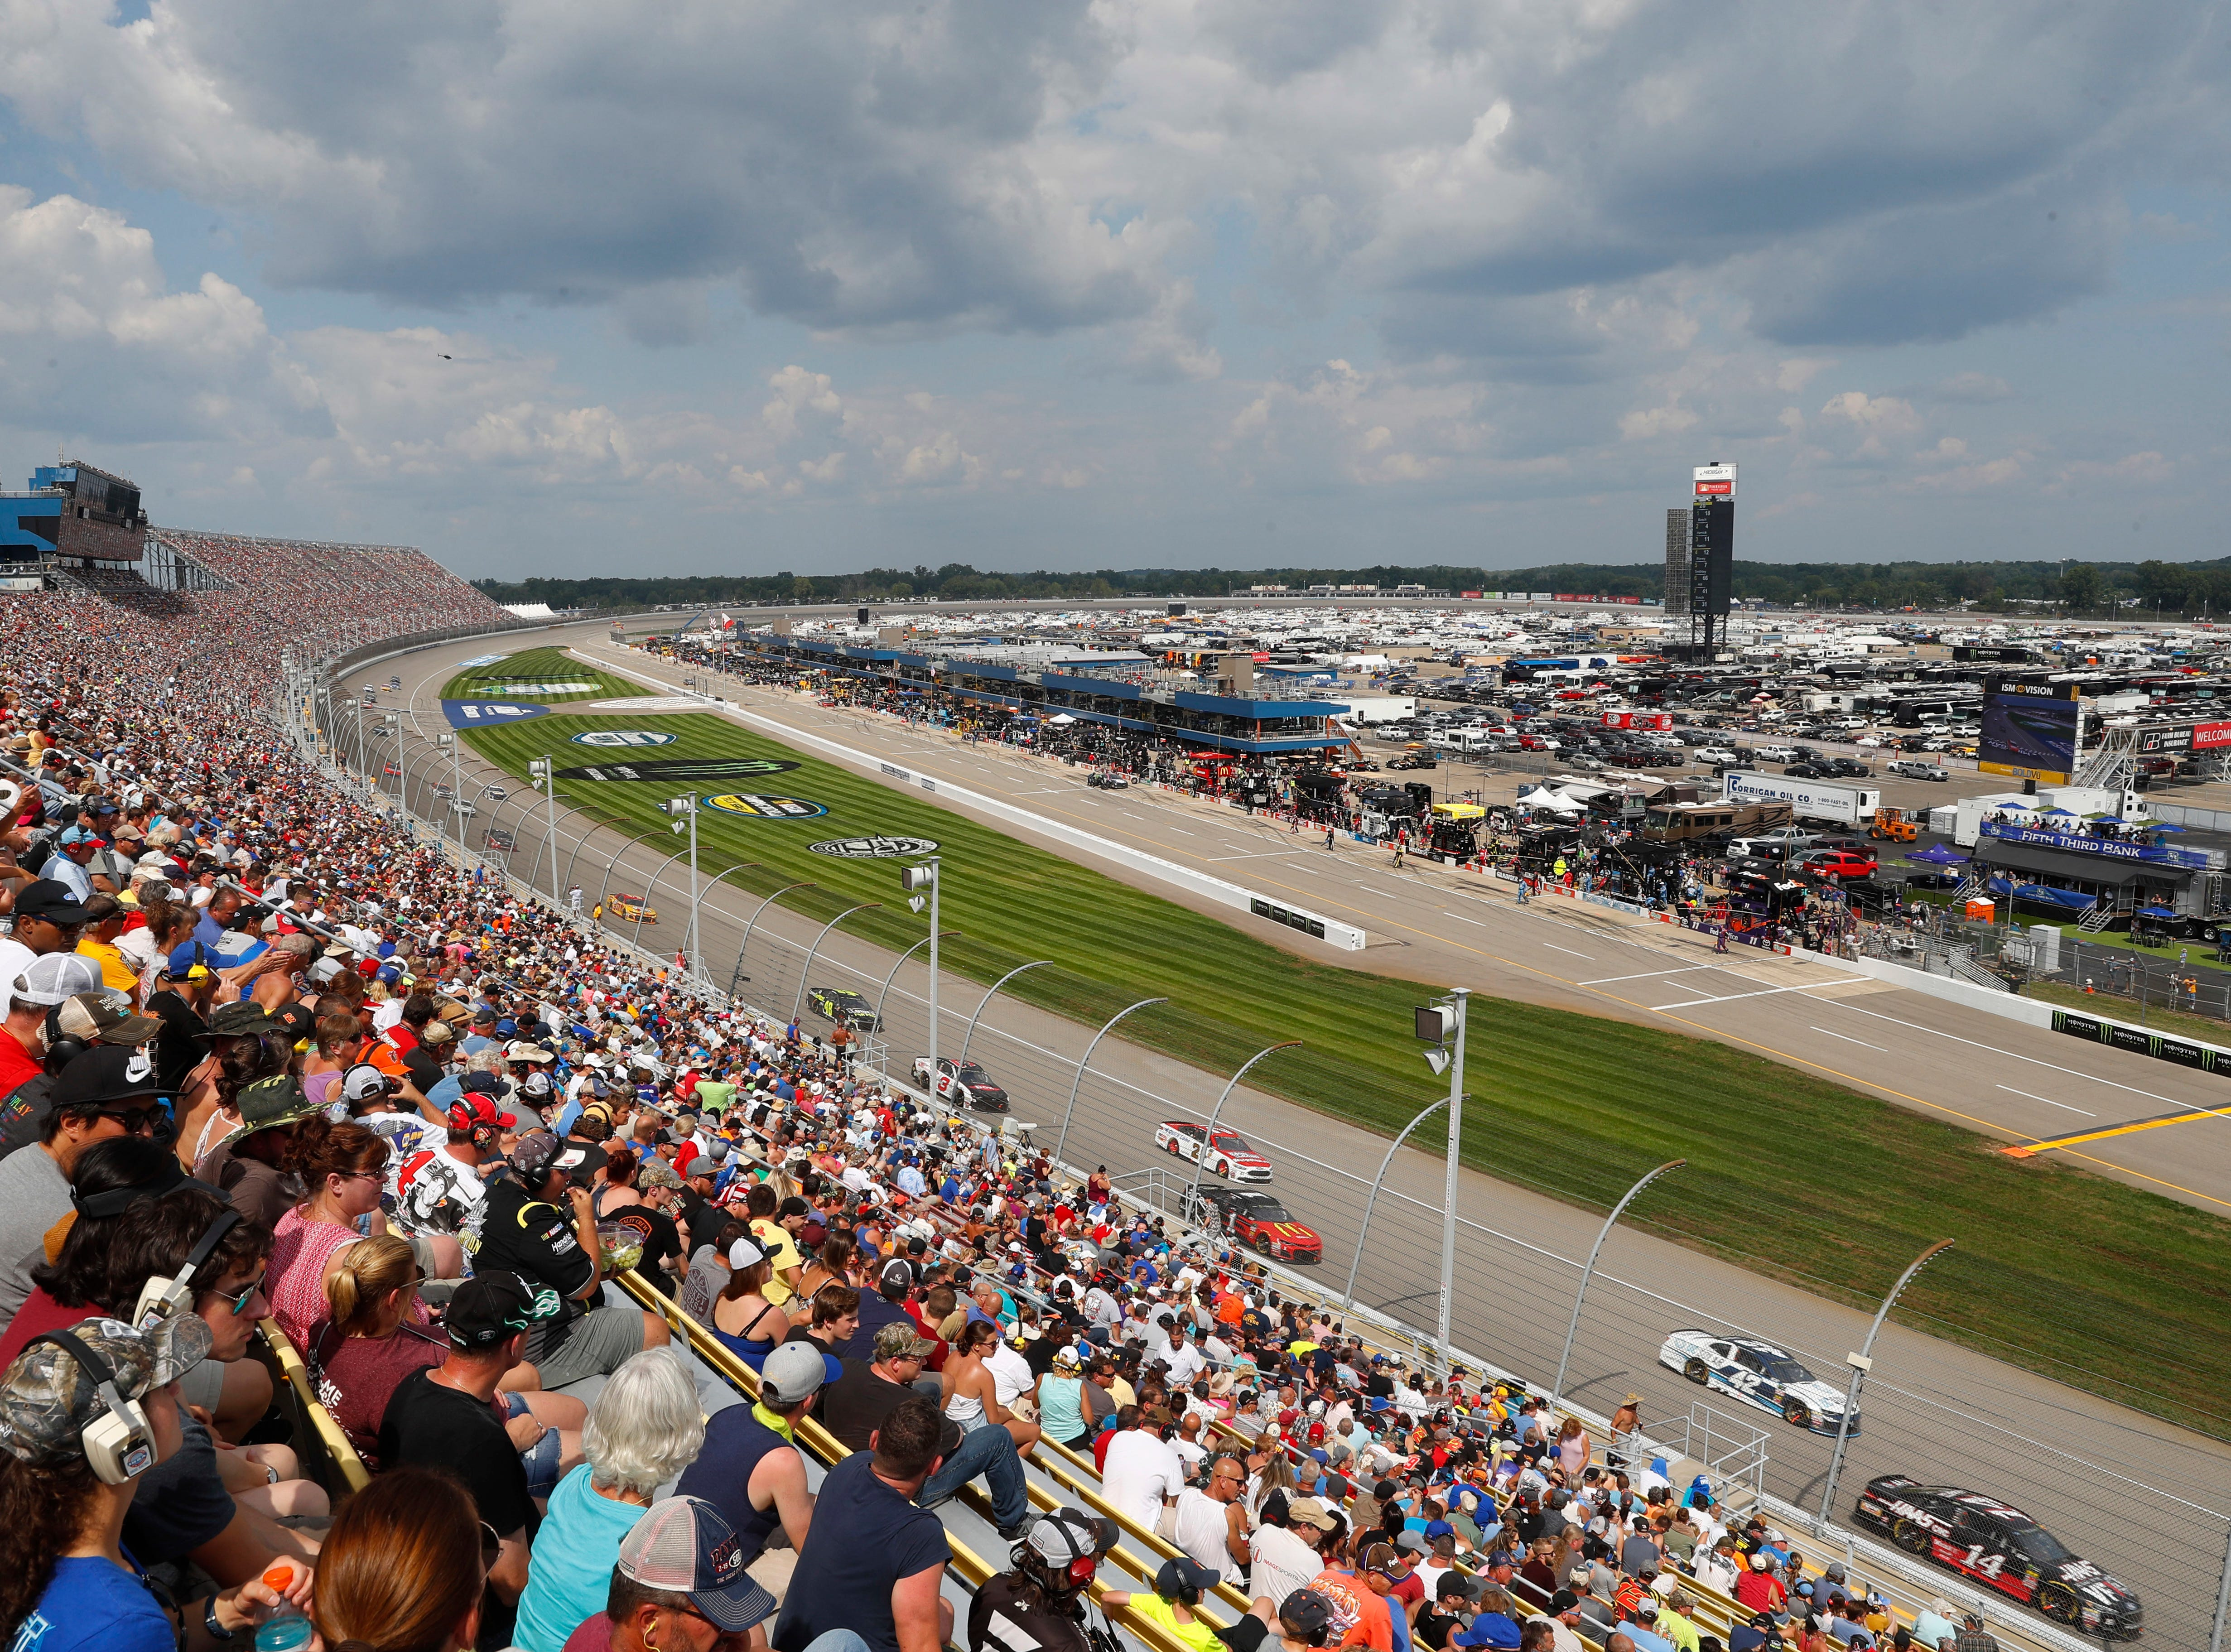 Fans watch a NASCAR Cup Series auto race at Michigan International Speedway in Brooklyn, Mich., Sunday, Aug. 12, 2018.